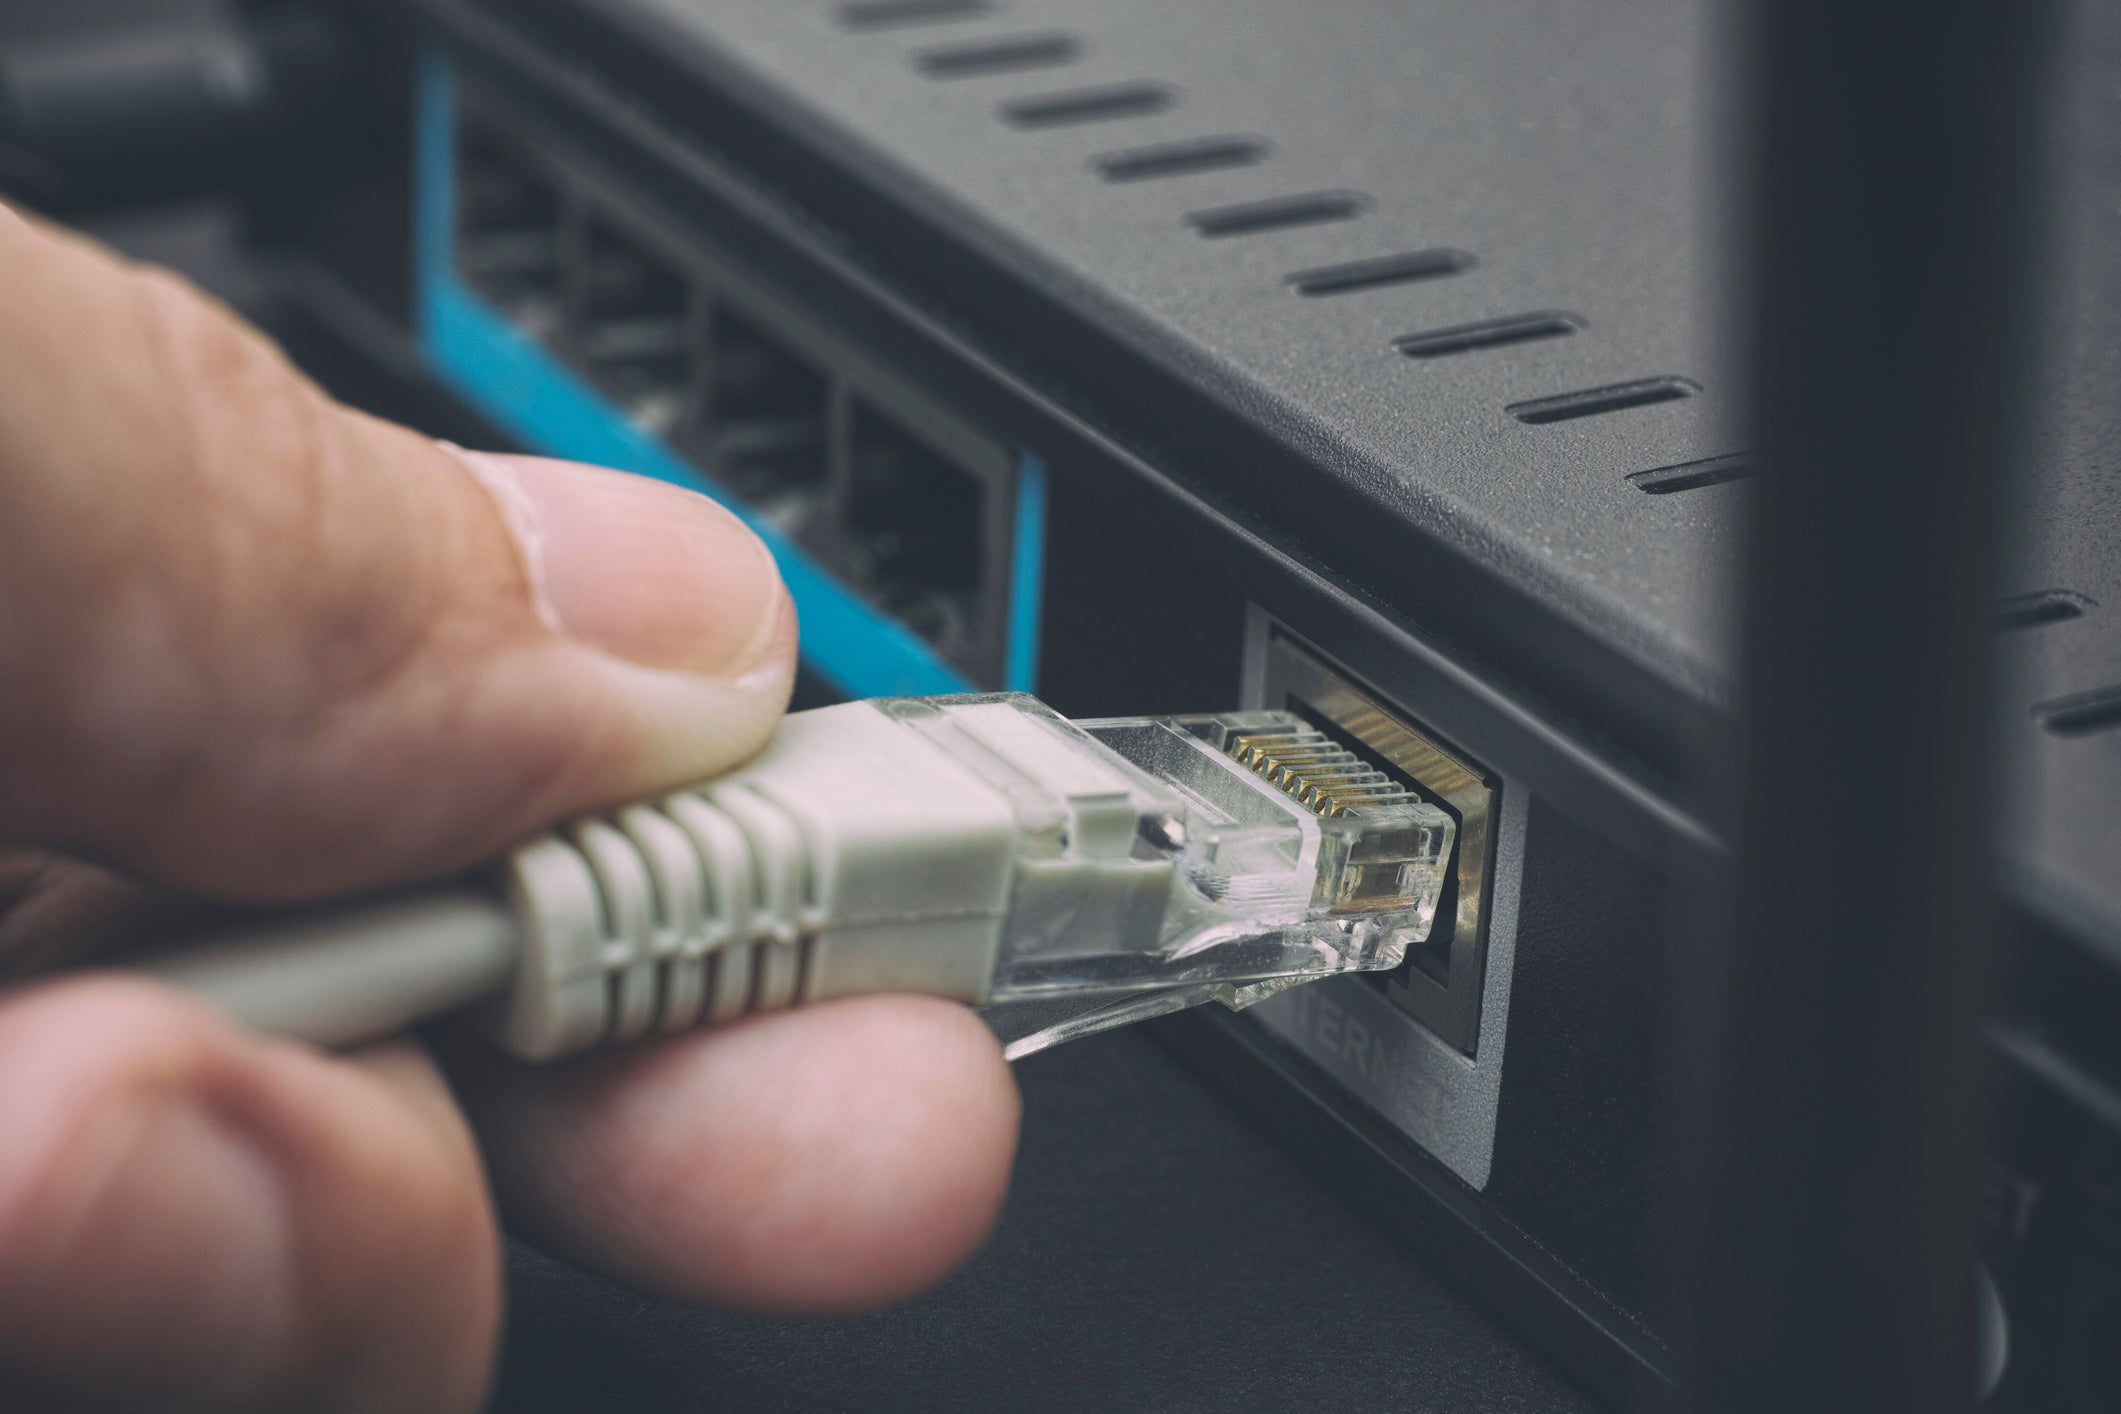 3 Ways to Cut Your Cable and Internet Bill | The Motley Fool